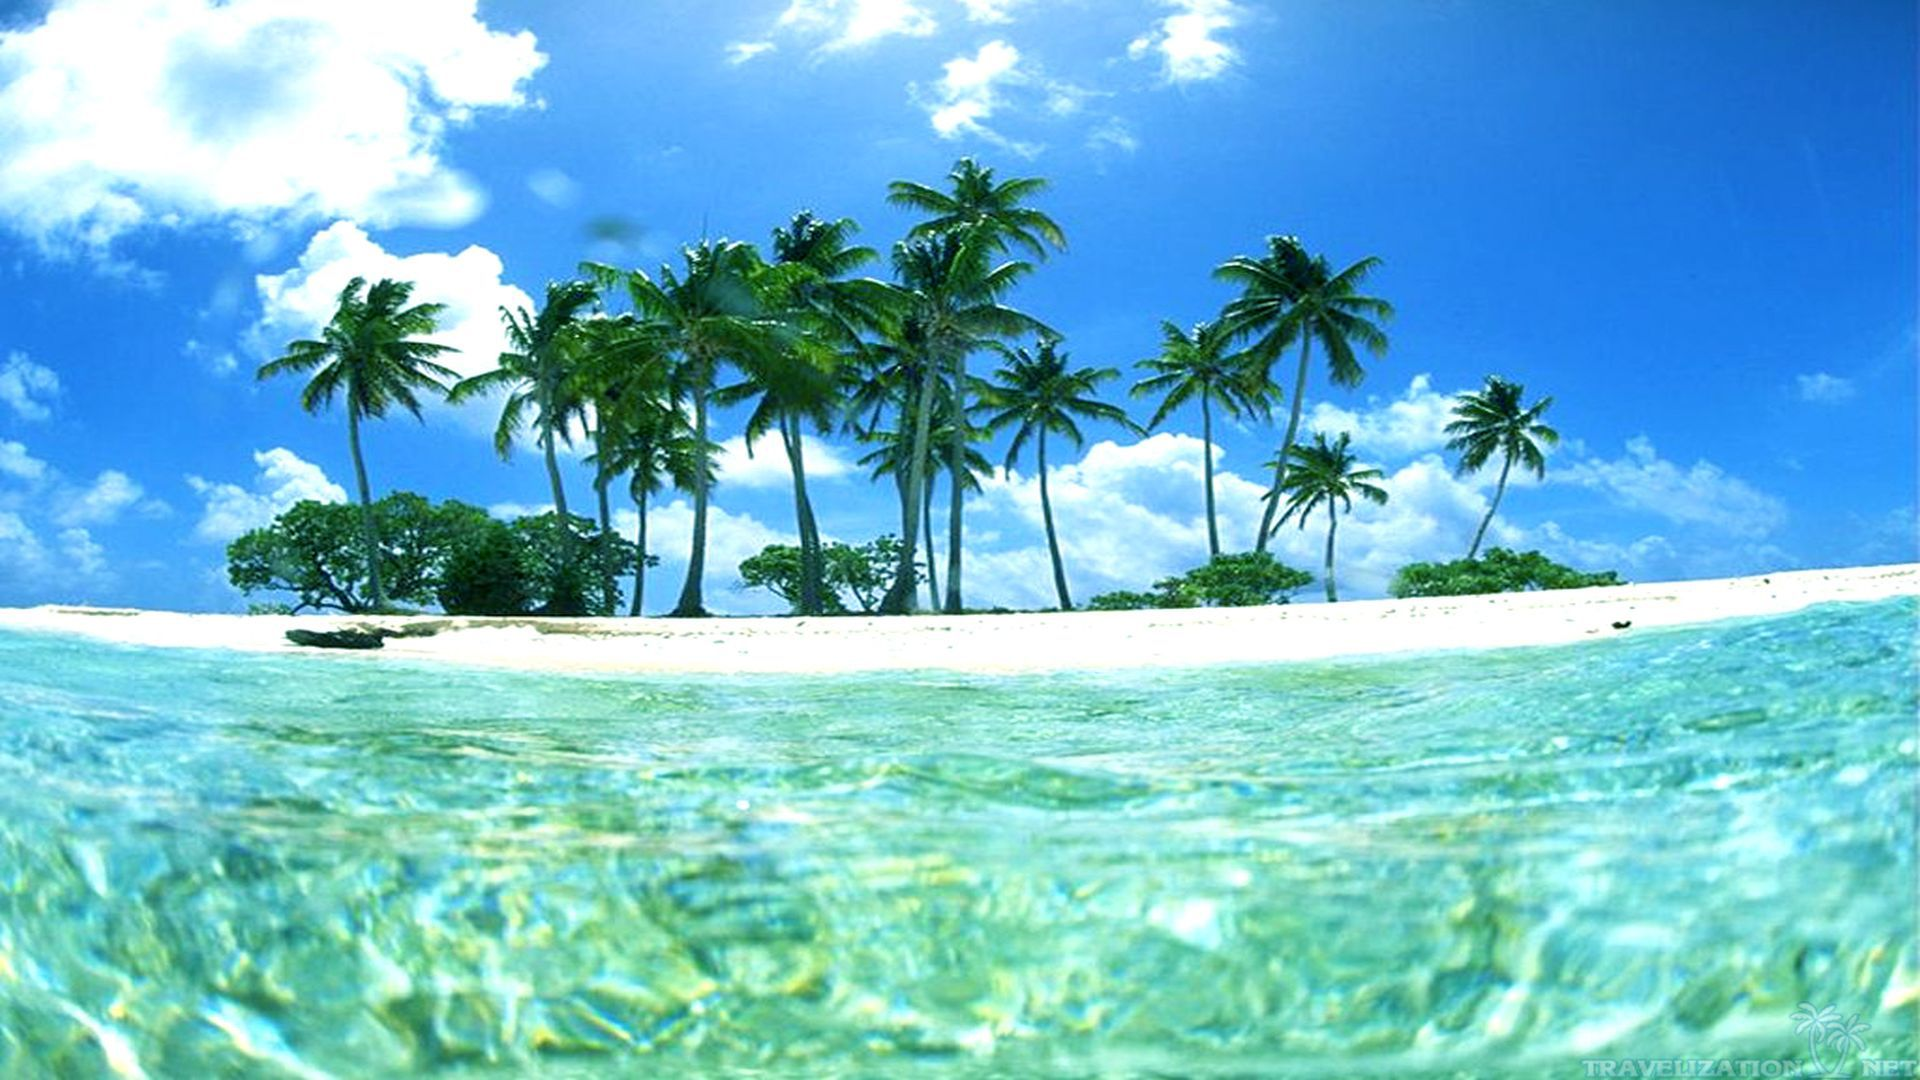 tropical island backgrounds - photo #18